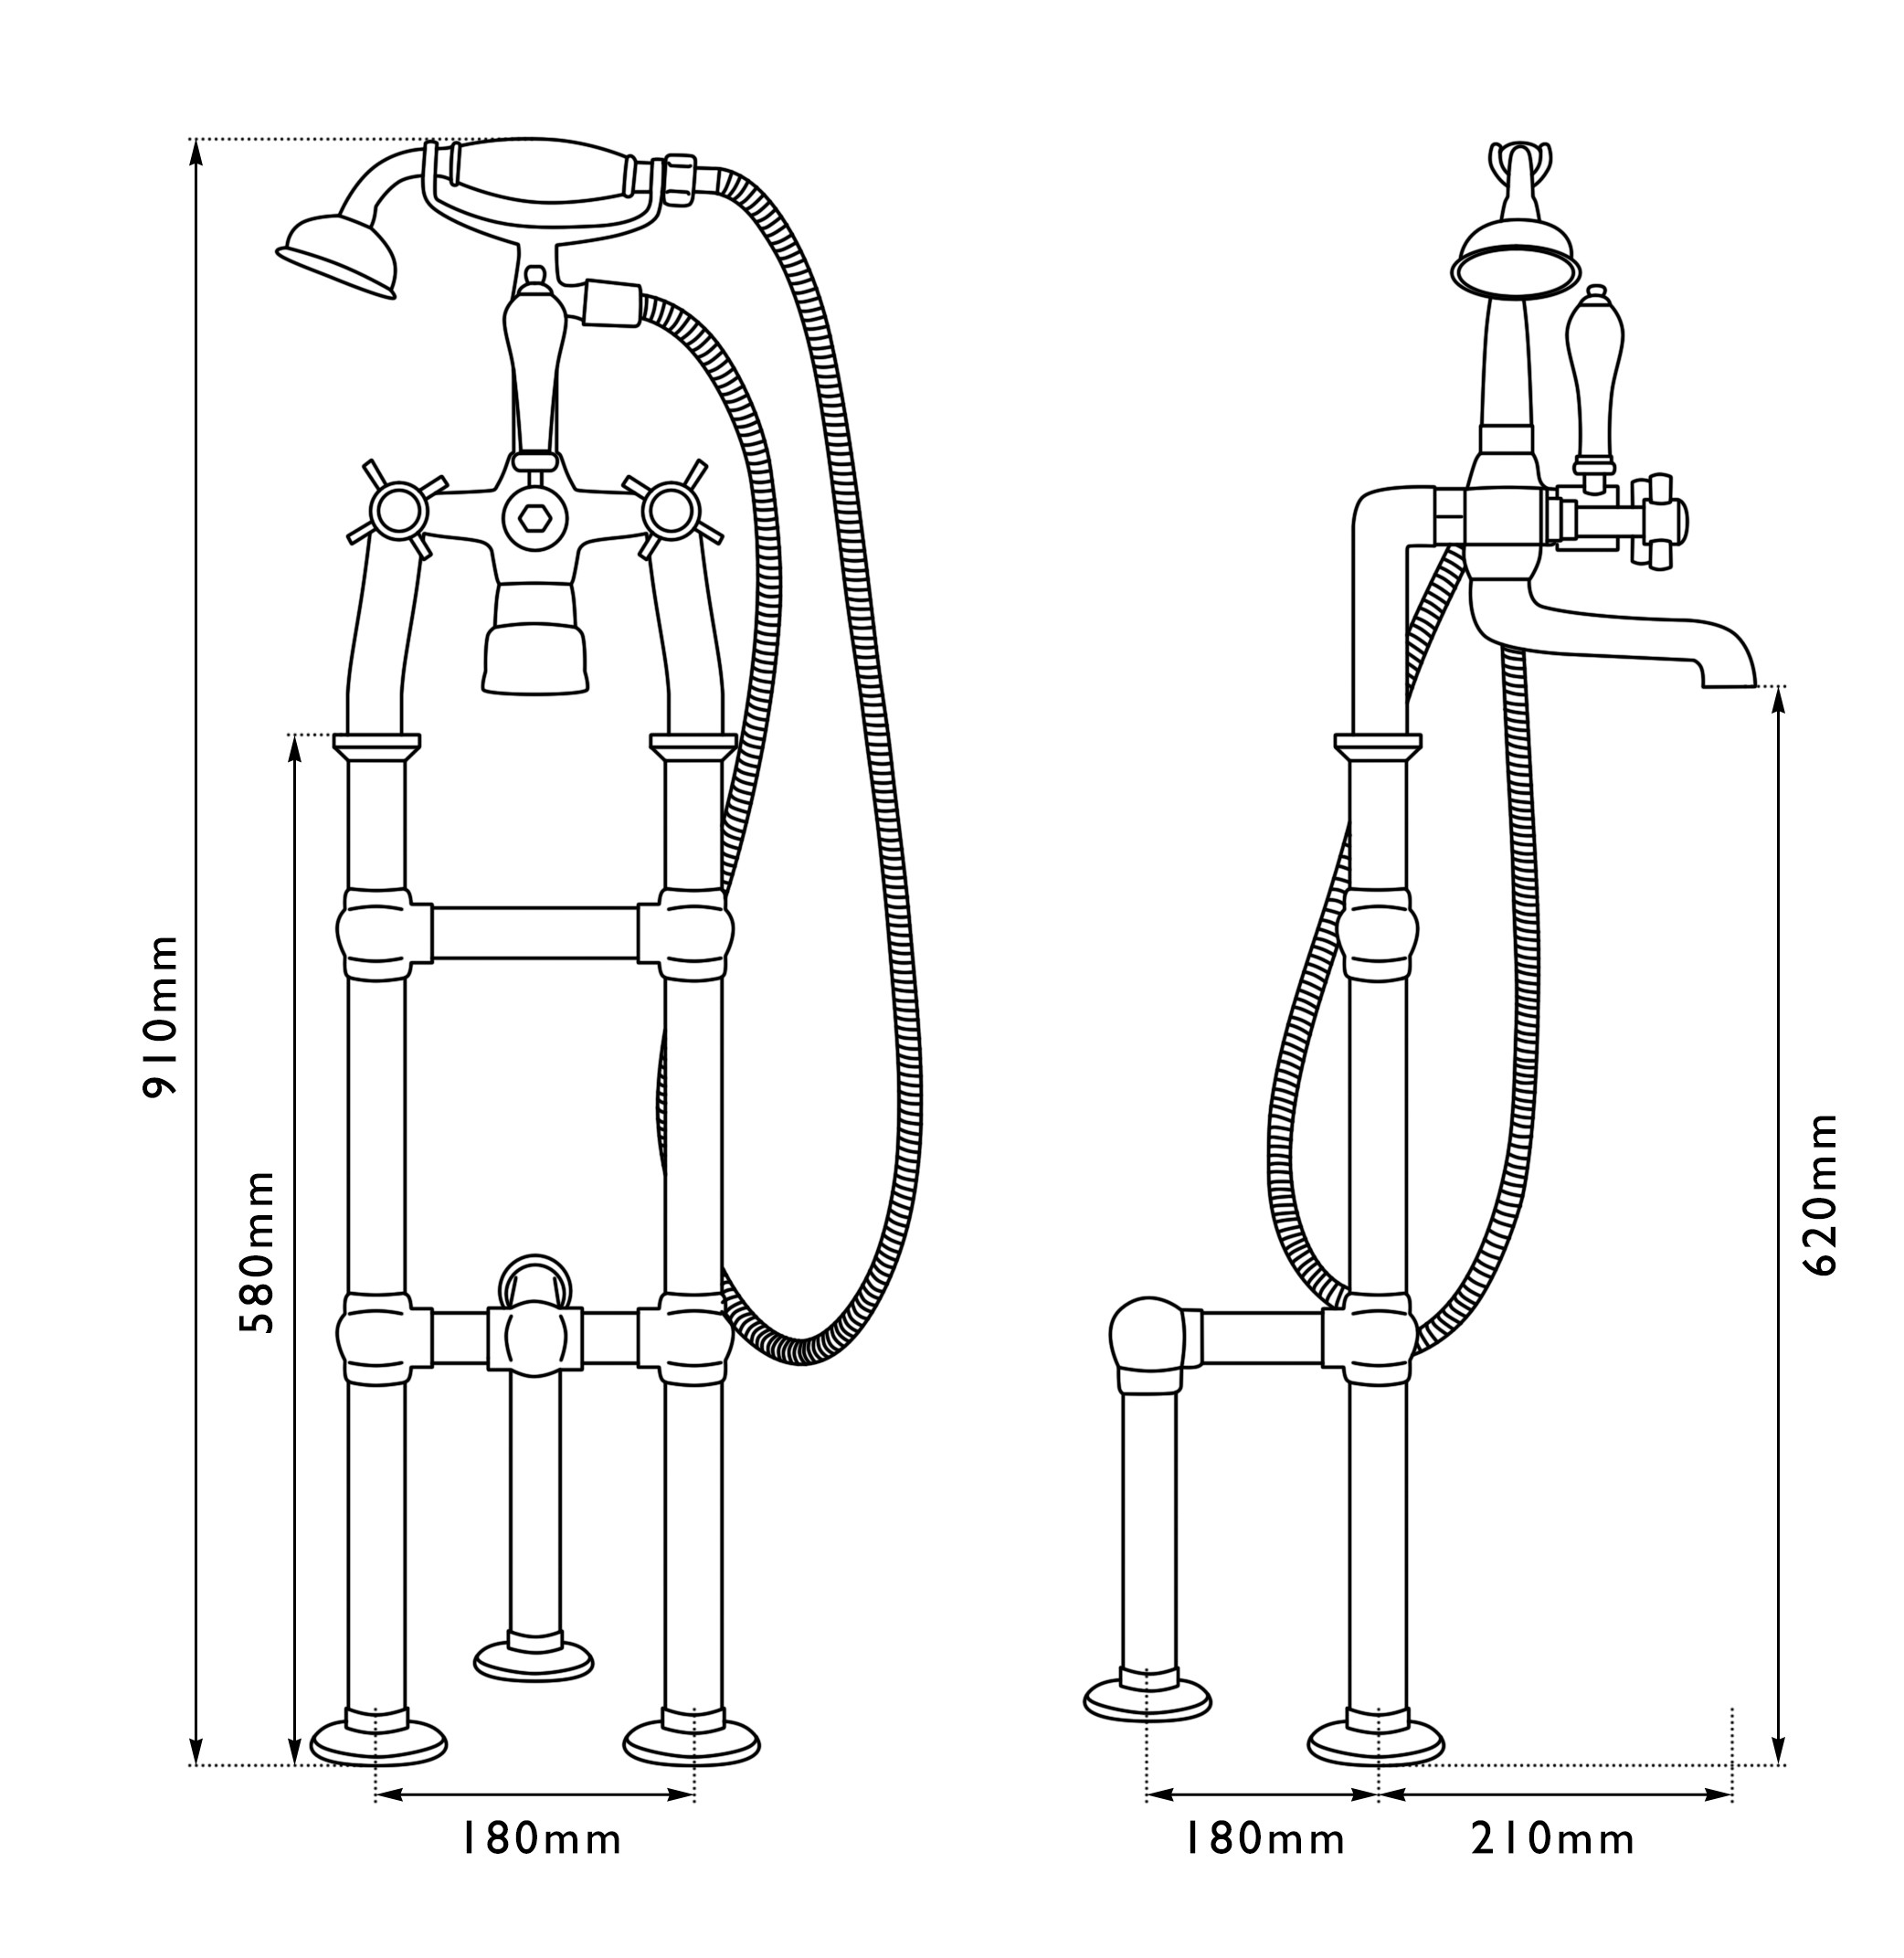 Dimensions Of Hurlingham Freestanding Bath Mixer Taps With Shower Head